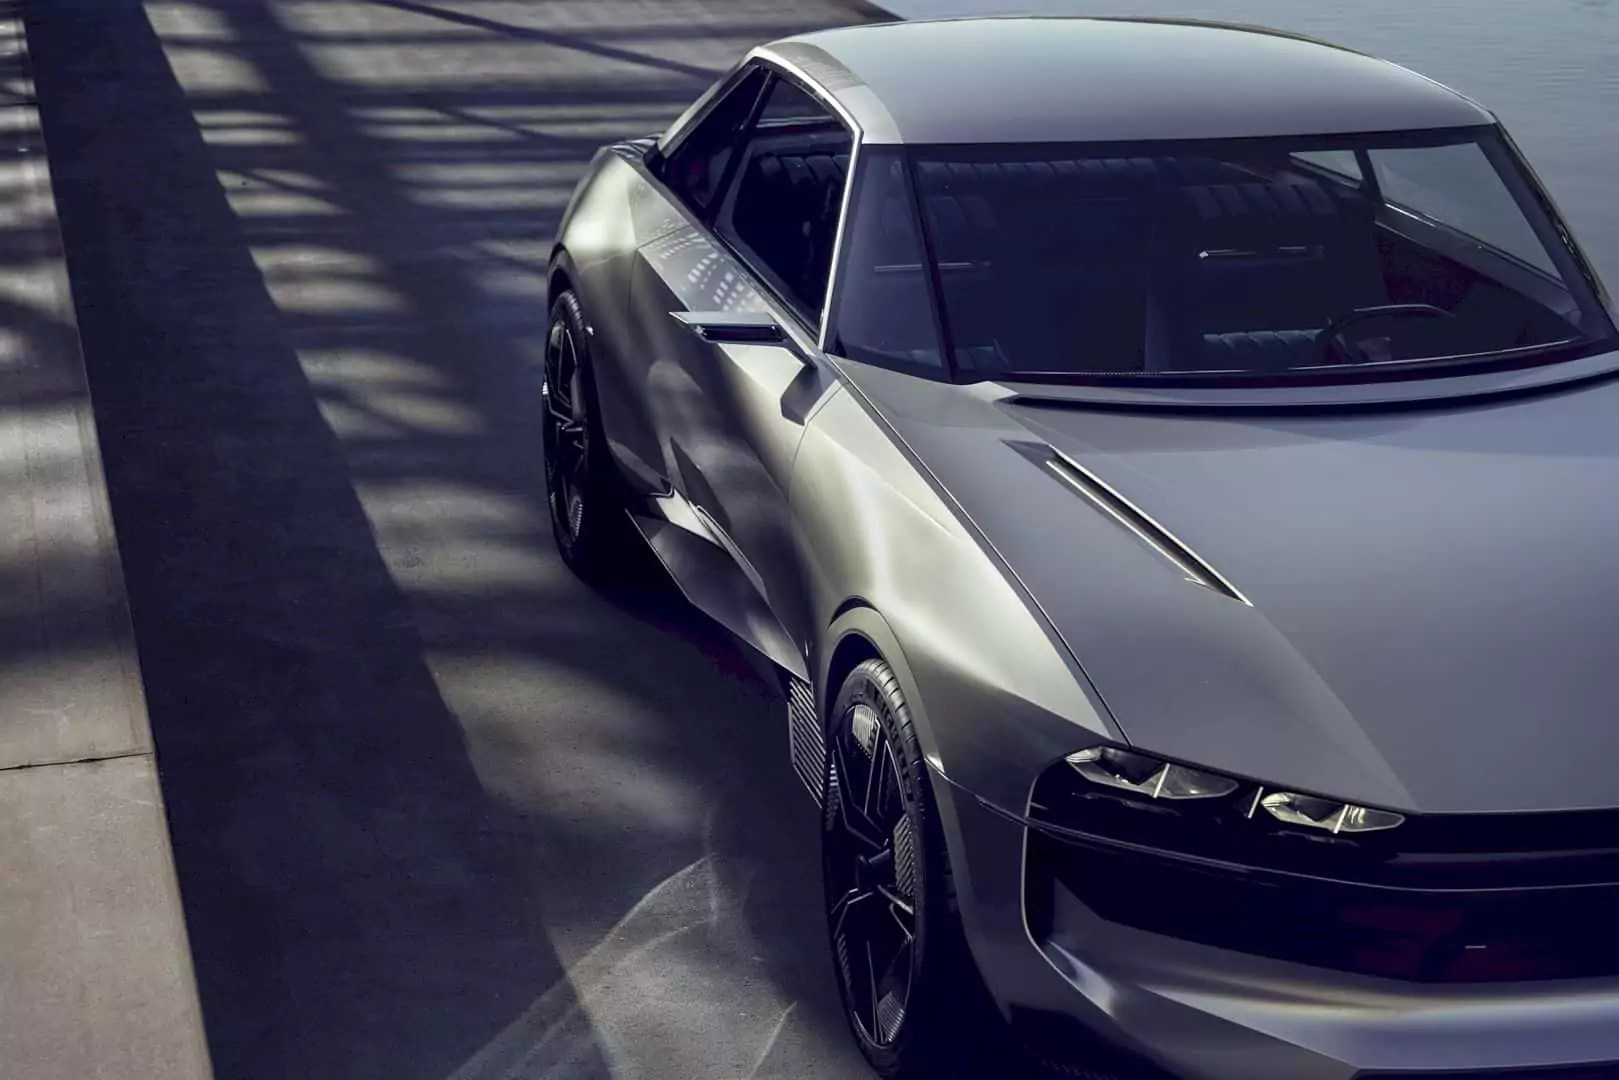 Peugeot e-Legend Concept: The Futuristic Reincarnation of 504 Coupe